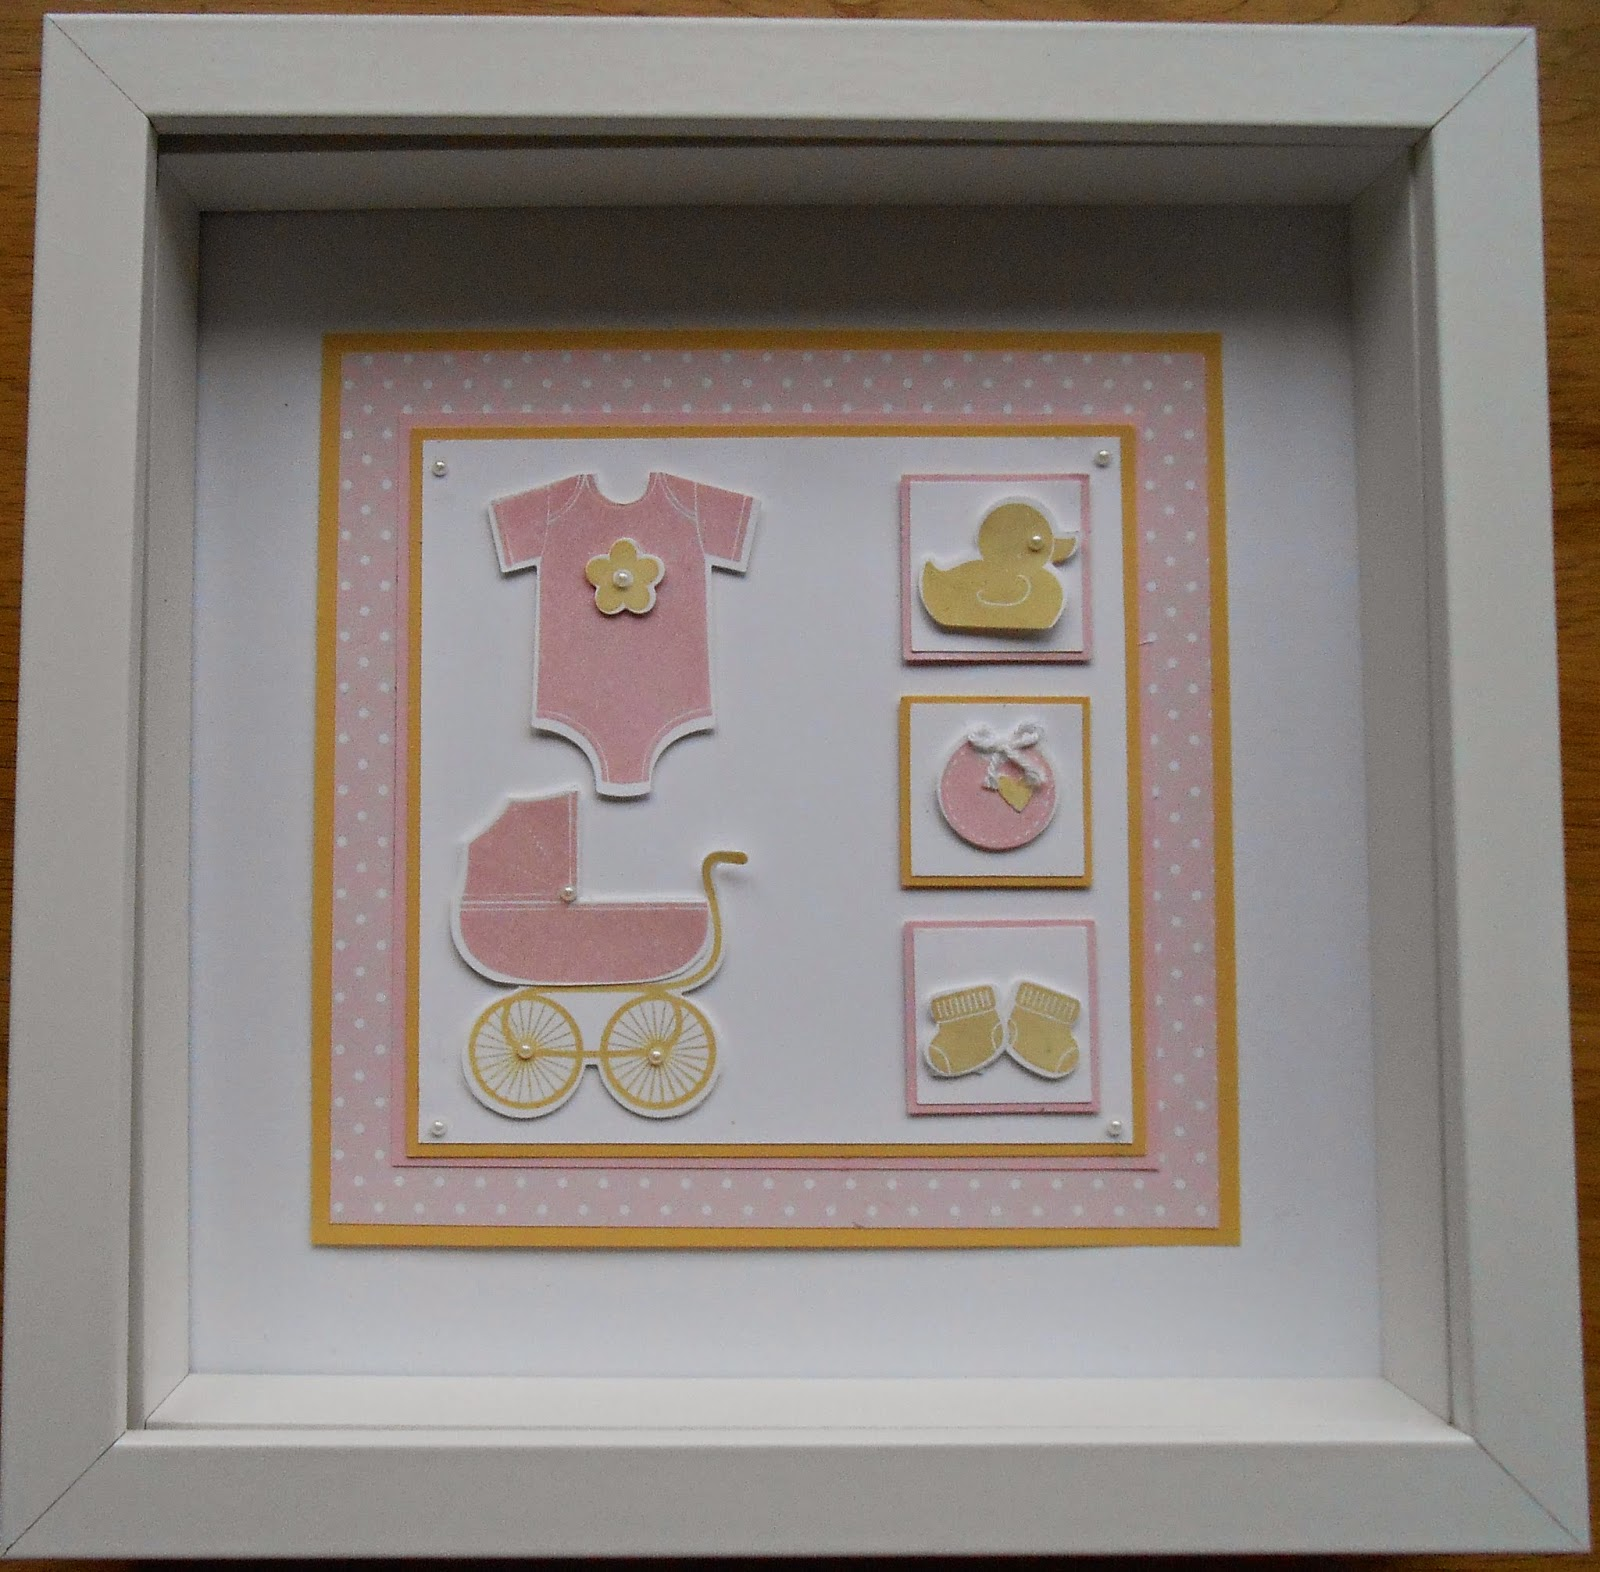 Baby Bedroom In A Box Special: Linda's Craft Room: Something For Baby Box Frames